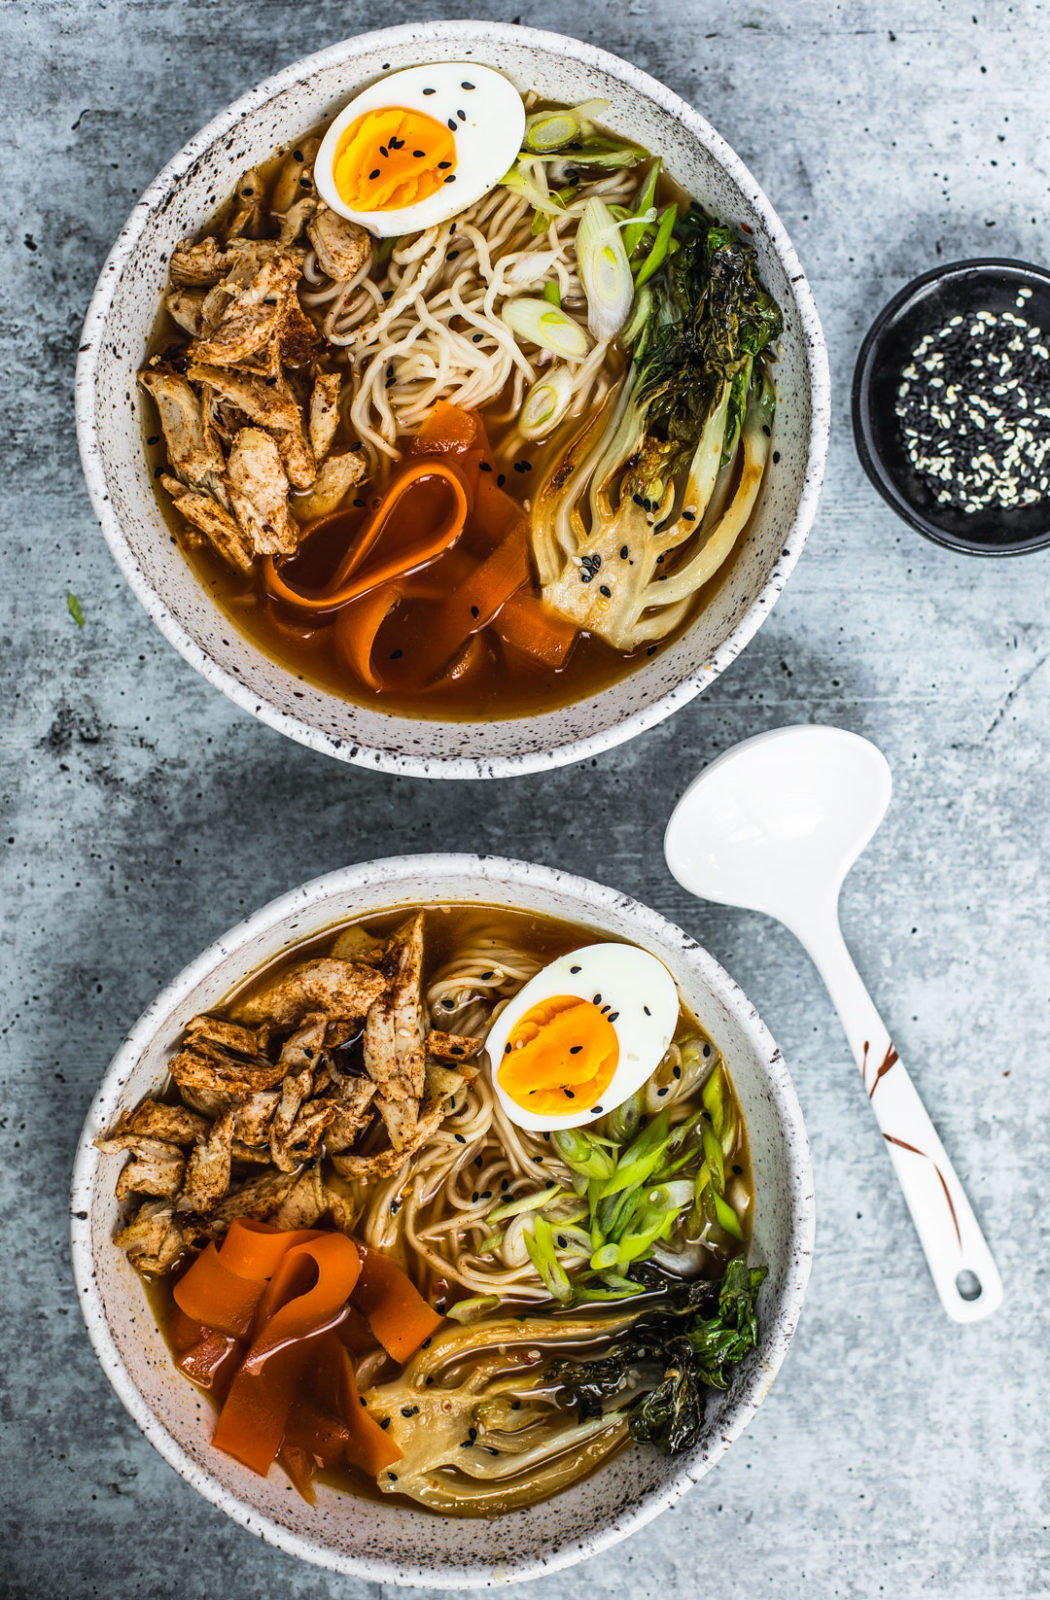 Two bowls of Five Spice chicken Ramen side by side, both topped with soft-boiled eggs, seared bok choy, and ribboned carrots.